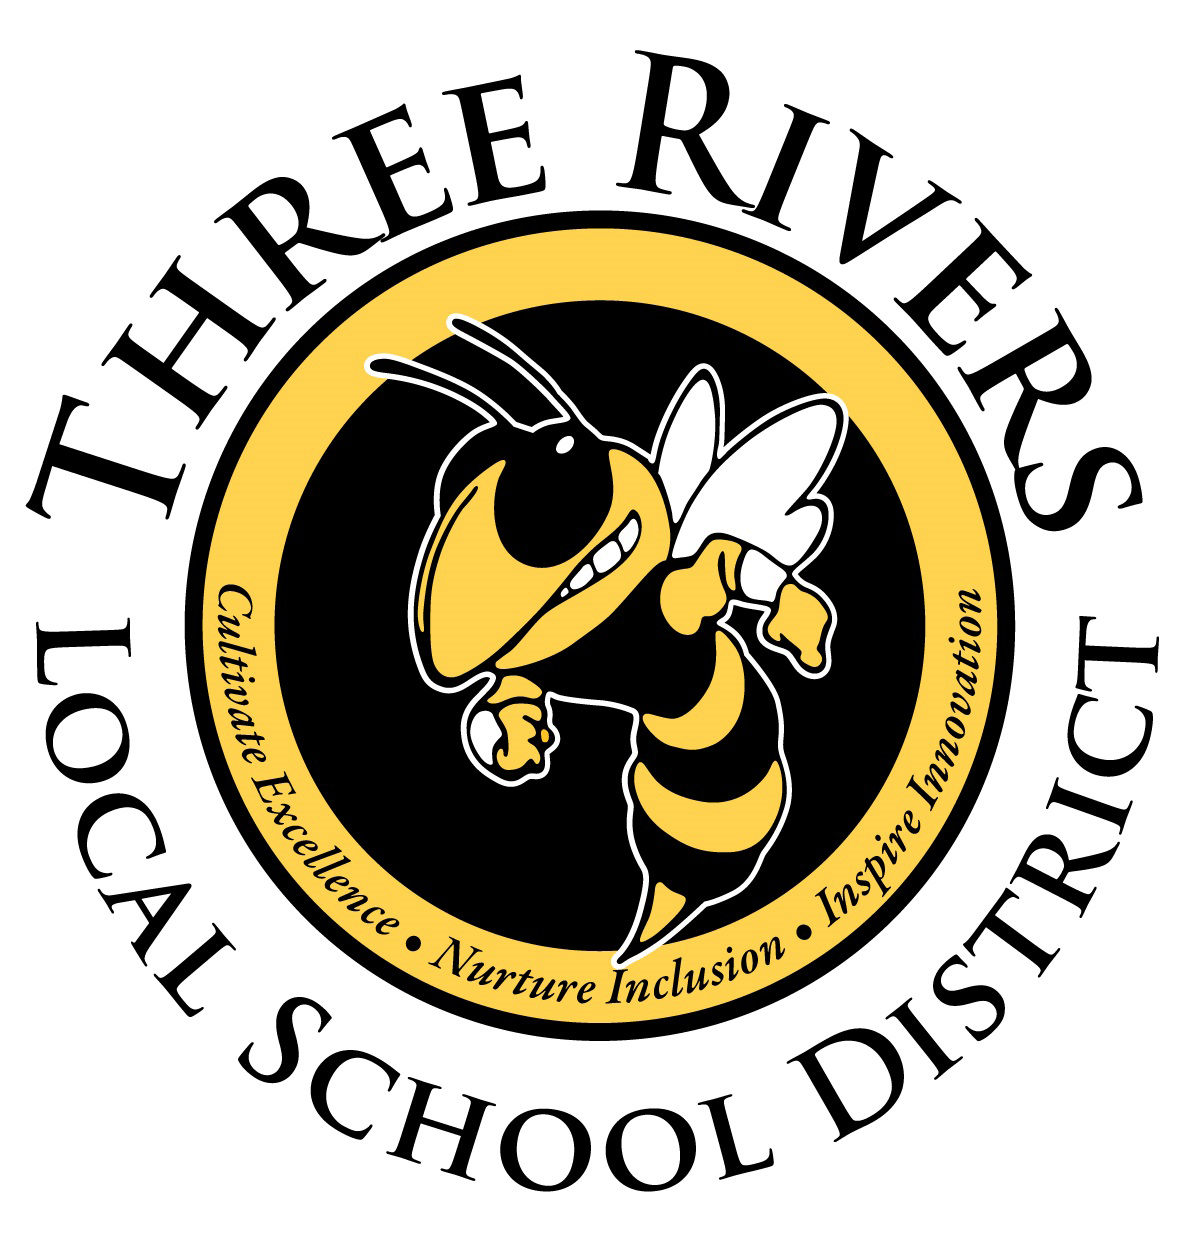 Three Rivers Local School District